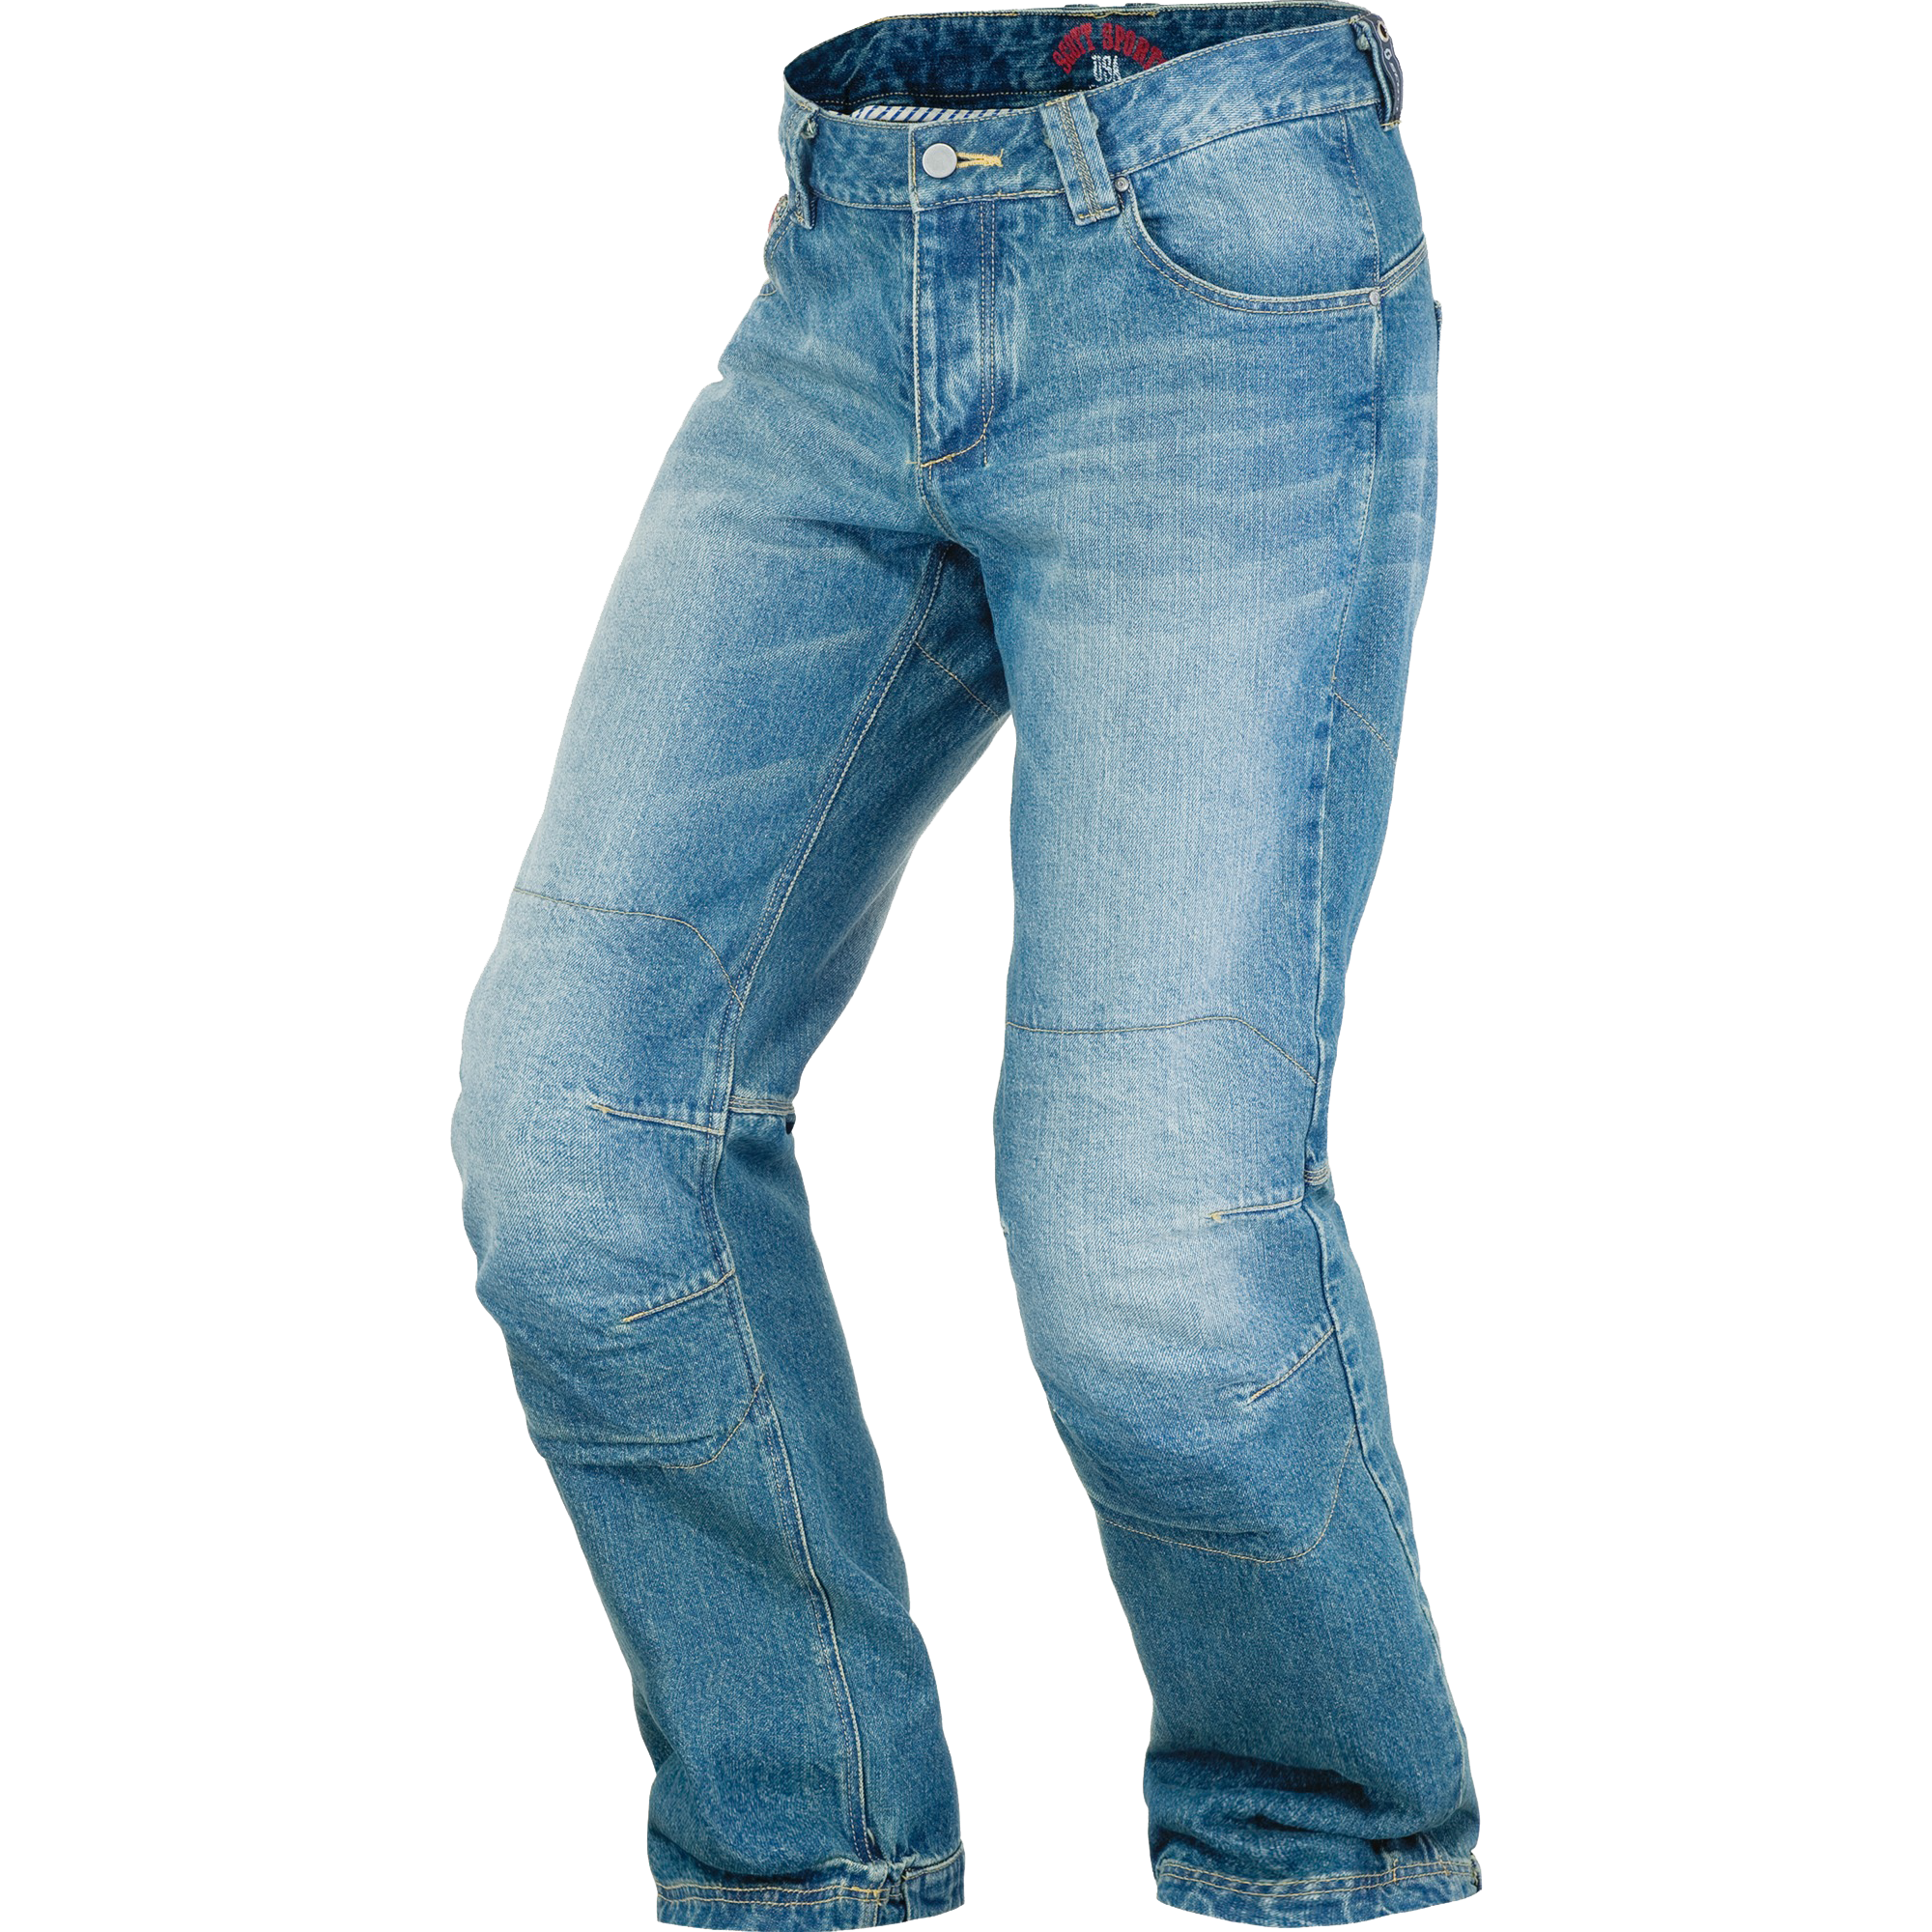 Jeans Png PNG Image